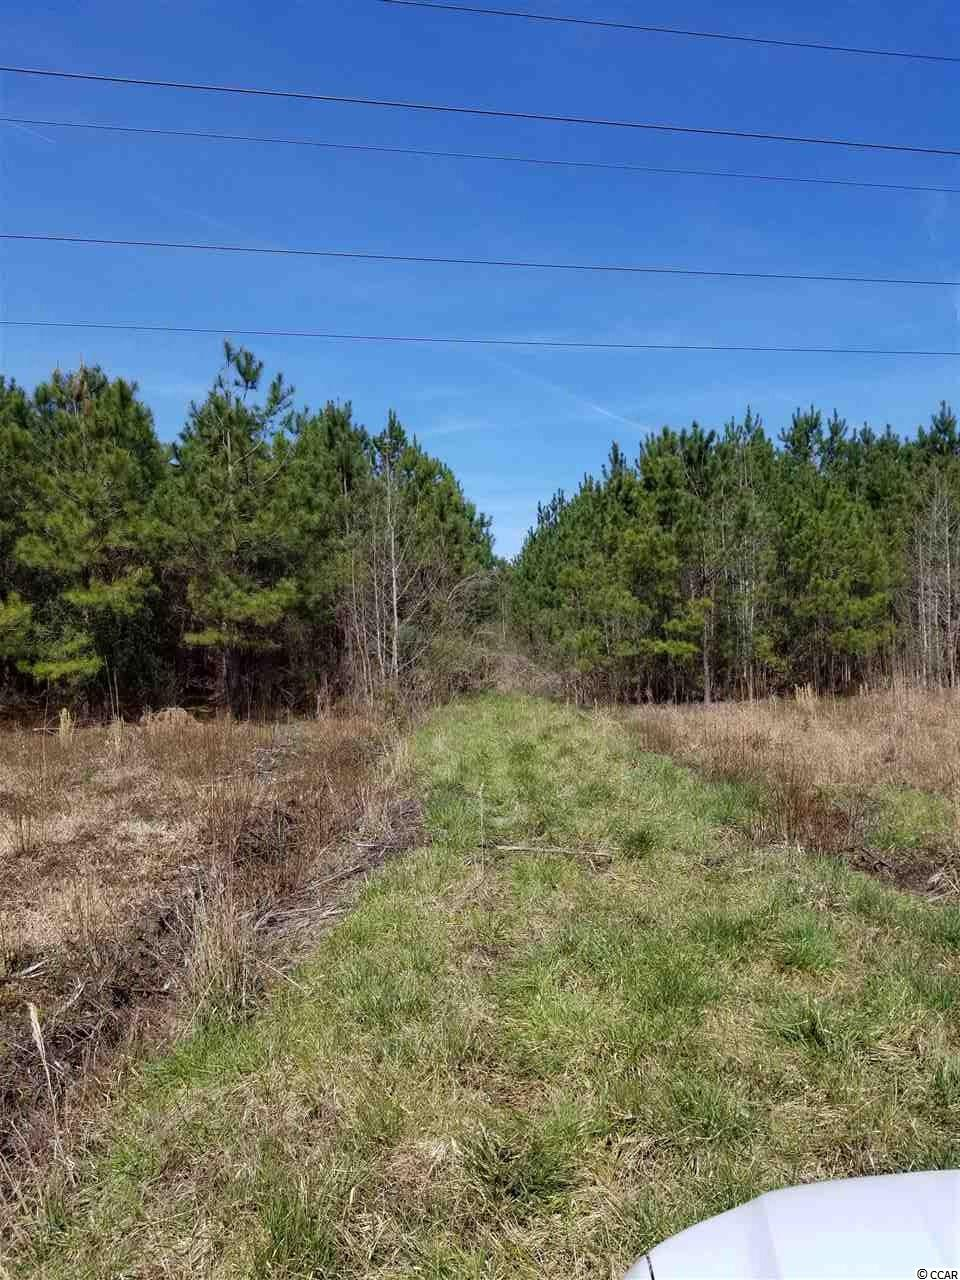 43.5 acres with approximately 10 year old pines